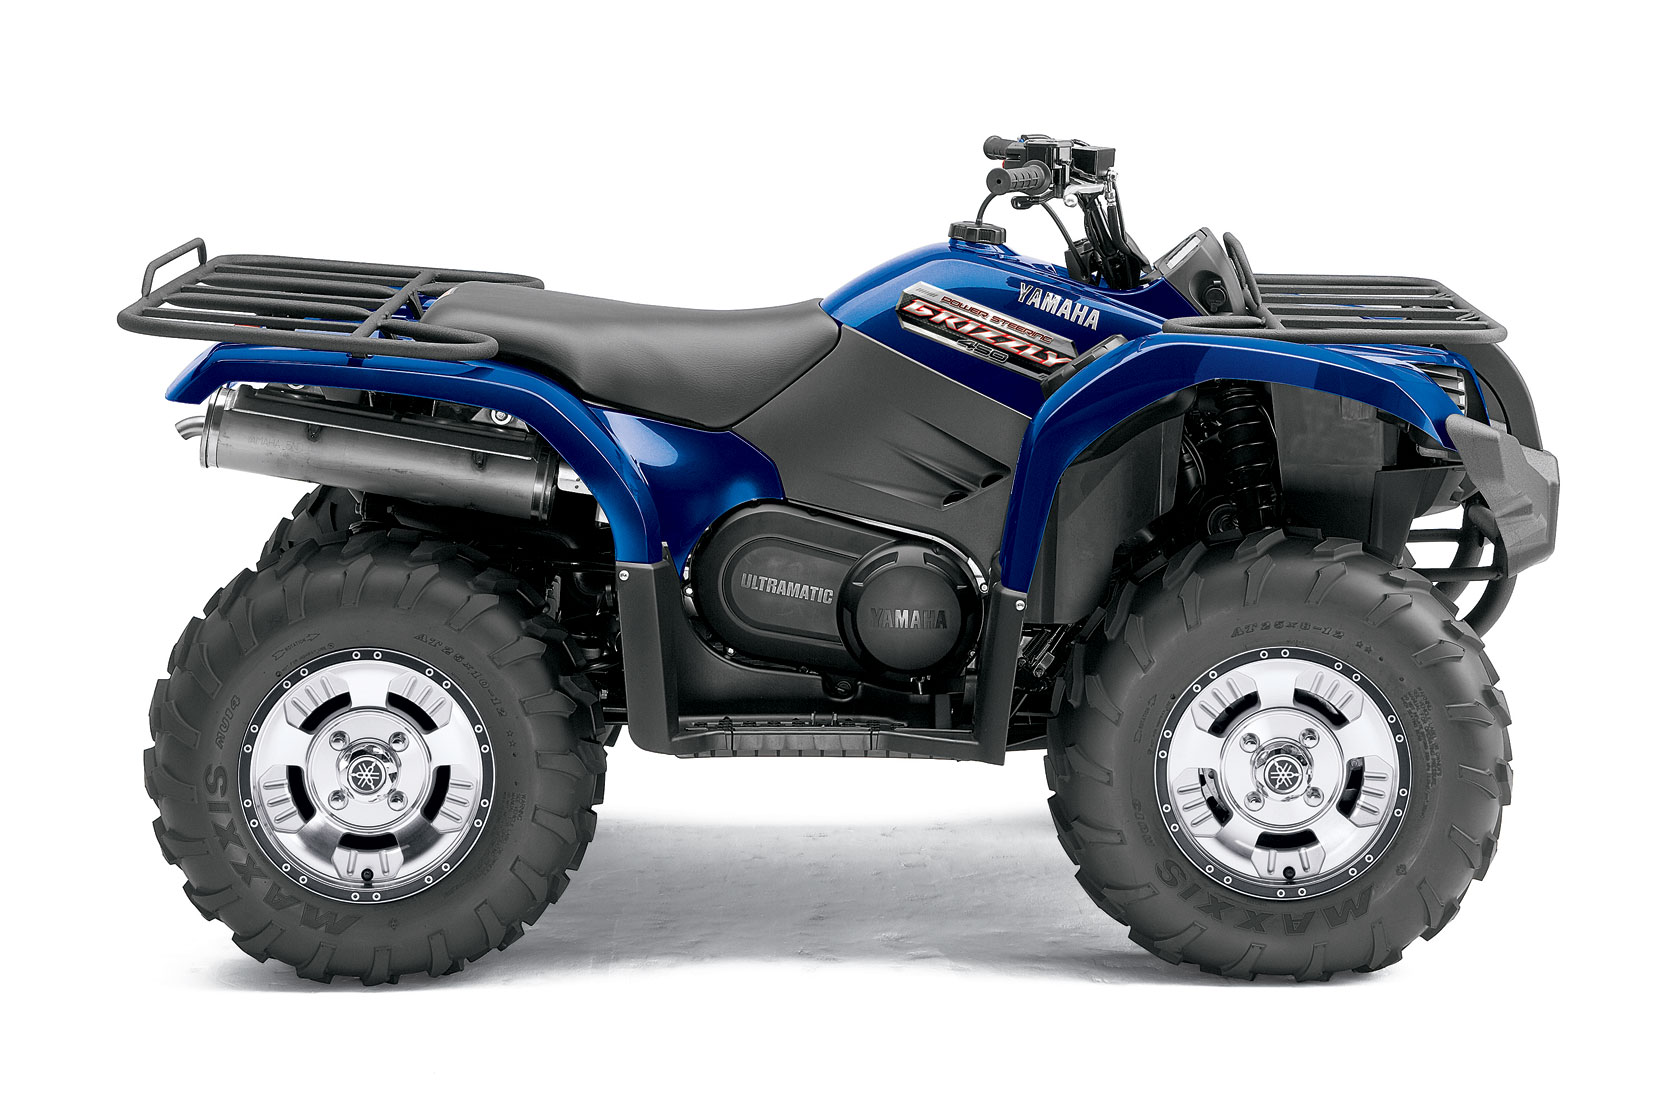 2012 yamaha grizzly 450 auto 4x4 eps review. Black Bedroom Furniture Sets. Home Design Ideas